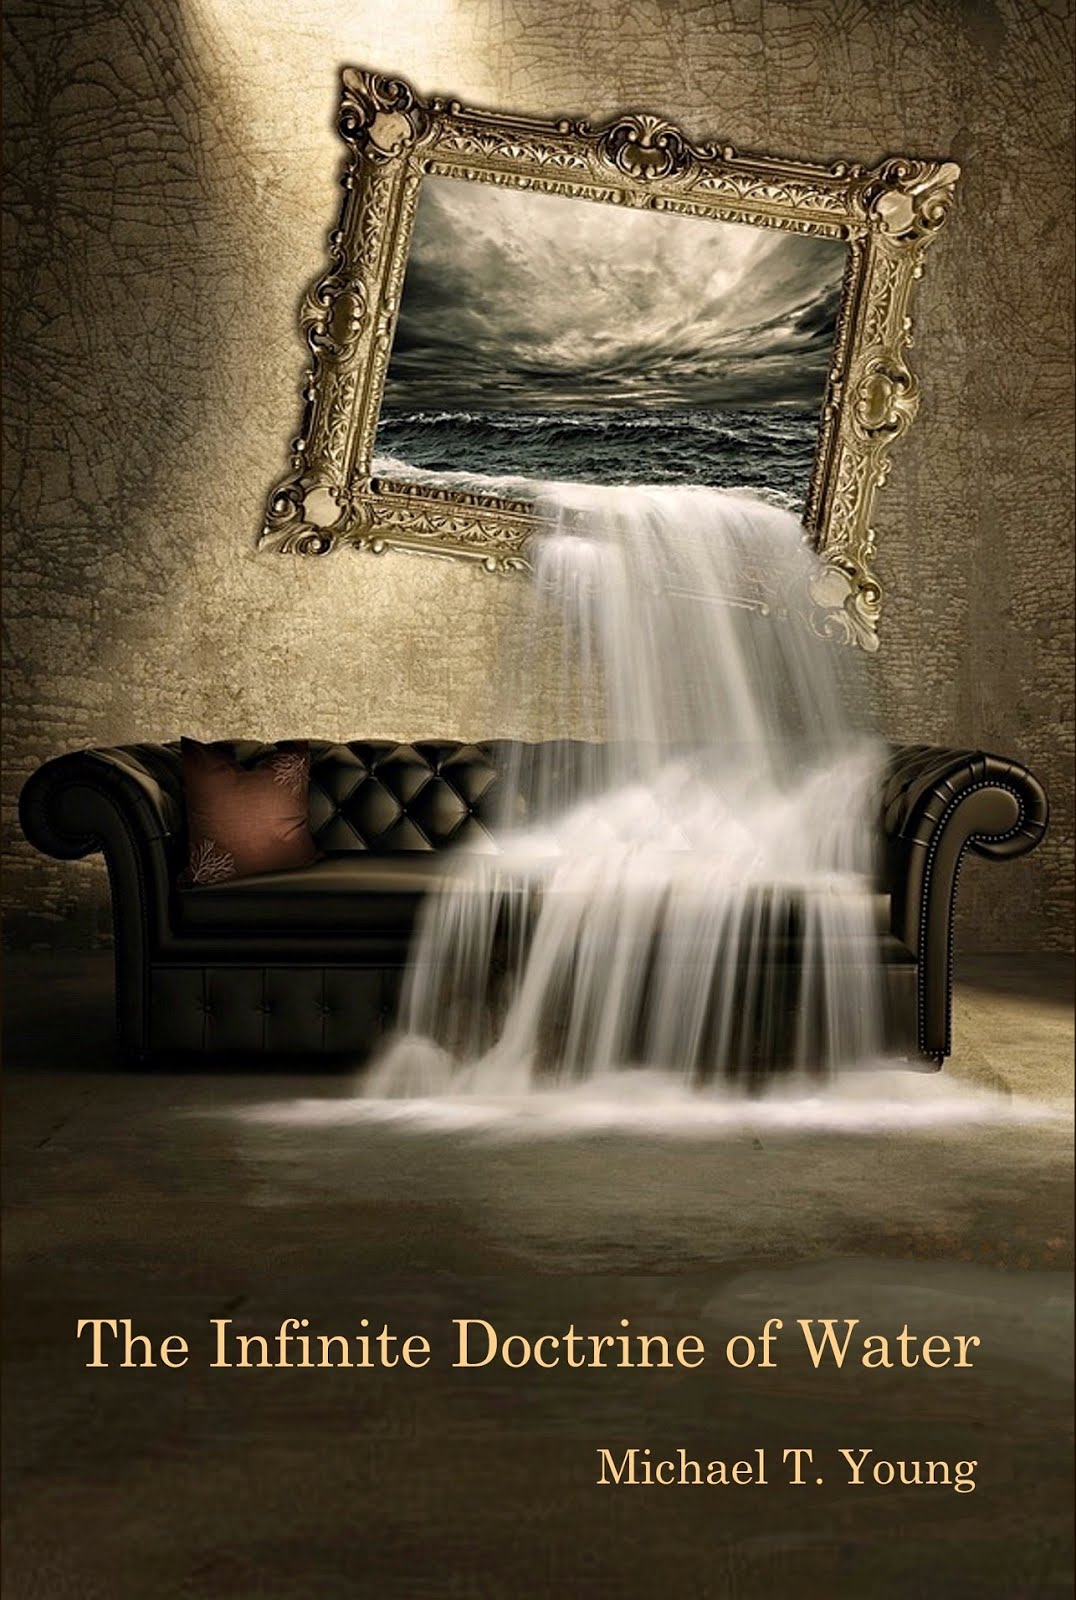 The Infinite Doctrine of Water